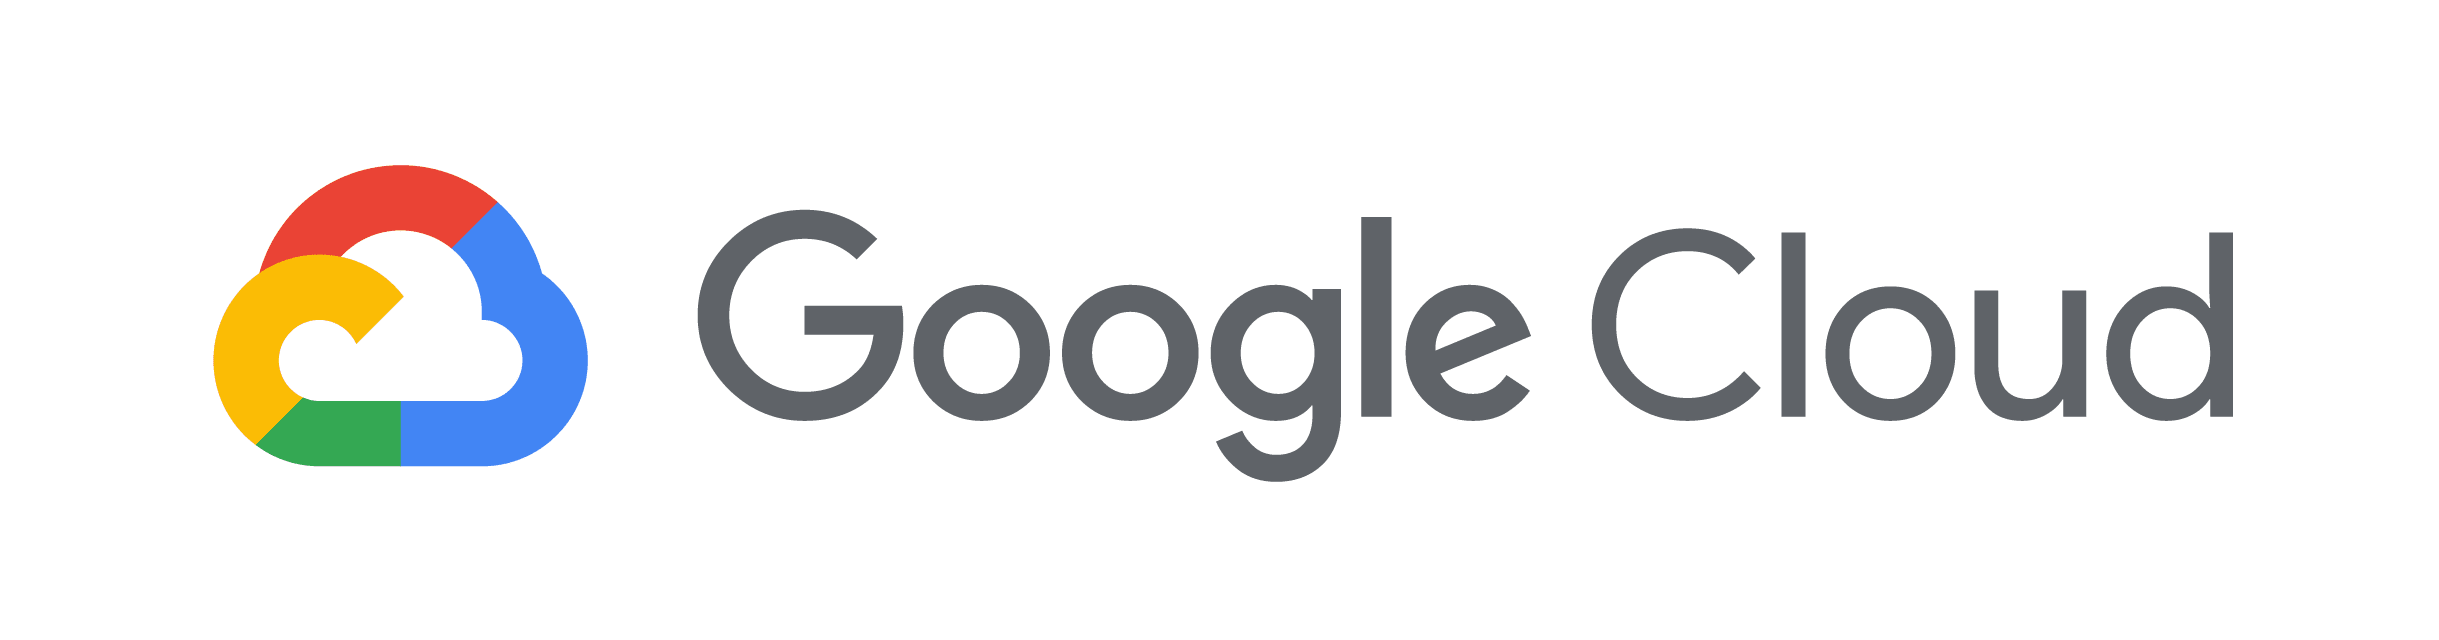 Google Cloud Coupon & Startup Discount